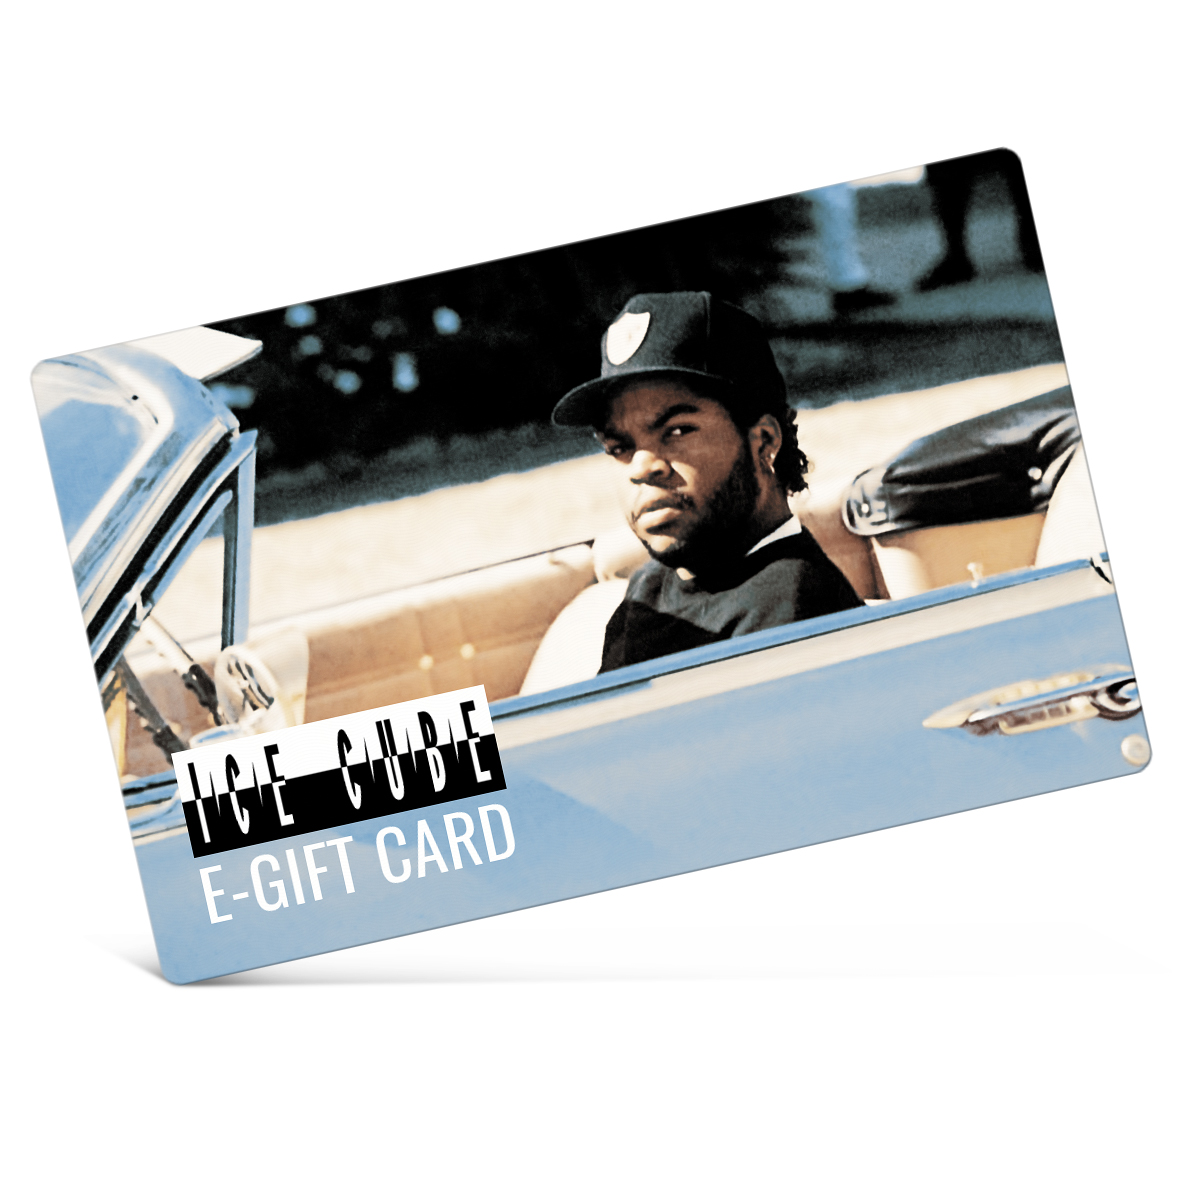 Ice Cube eGift Card